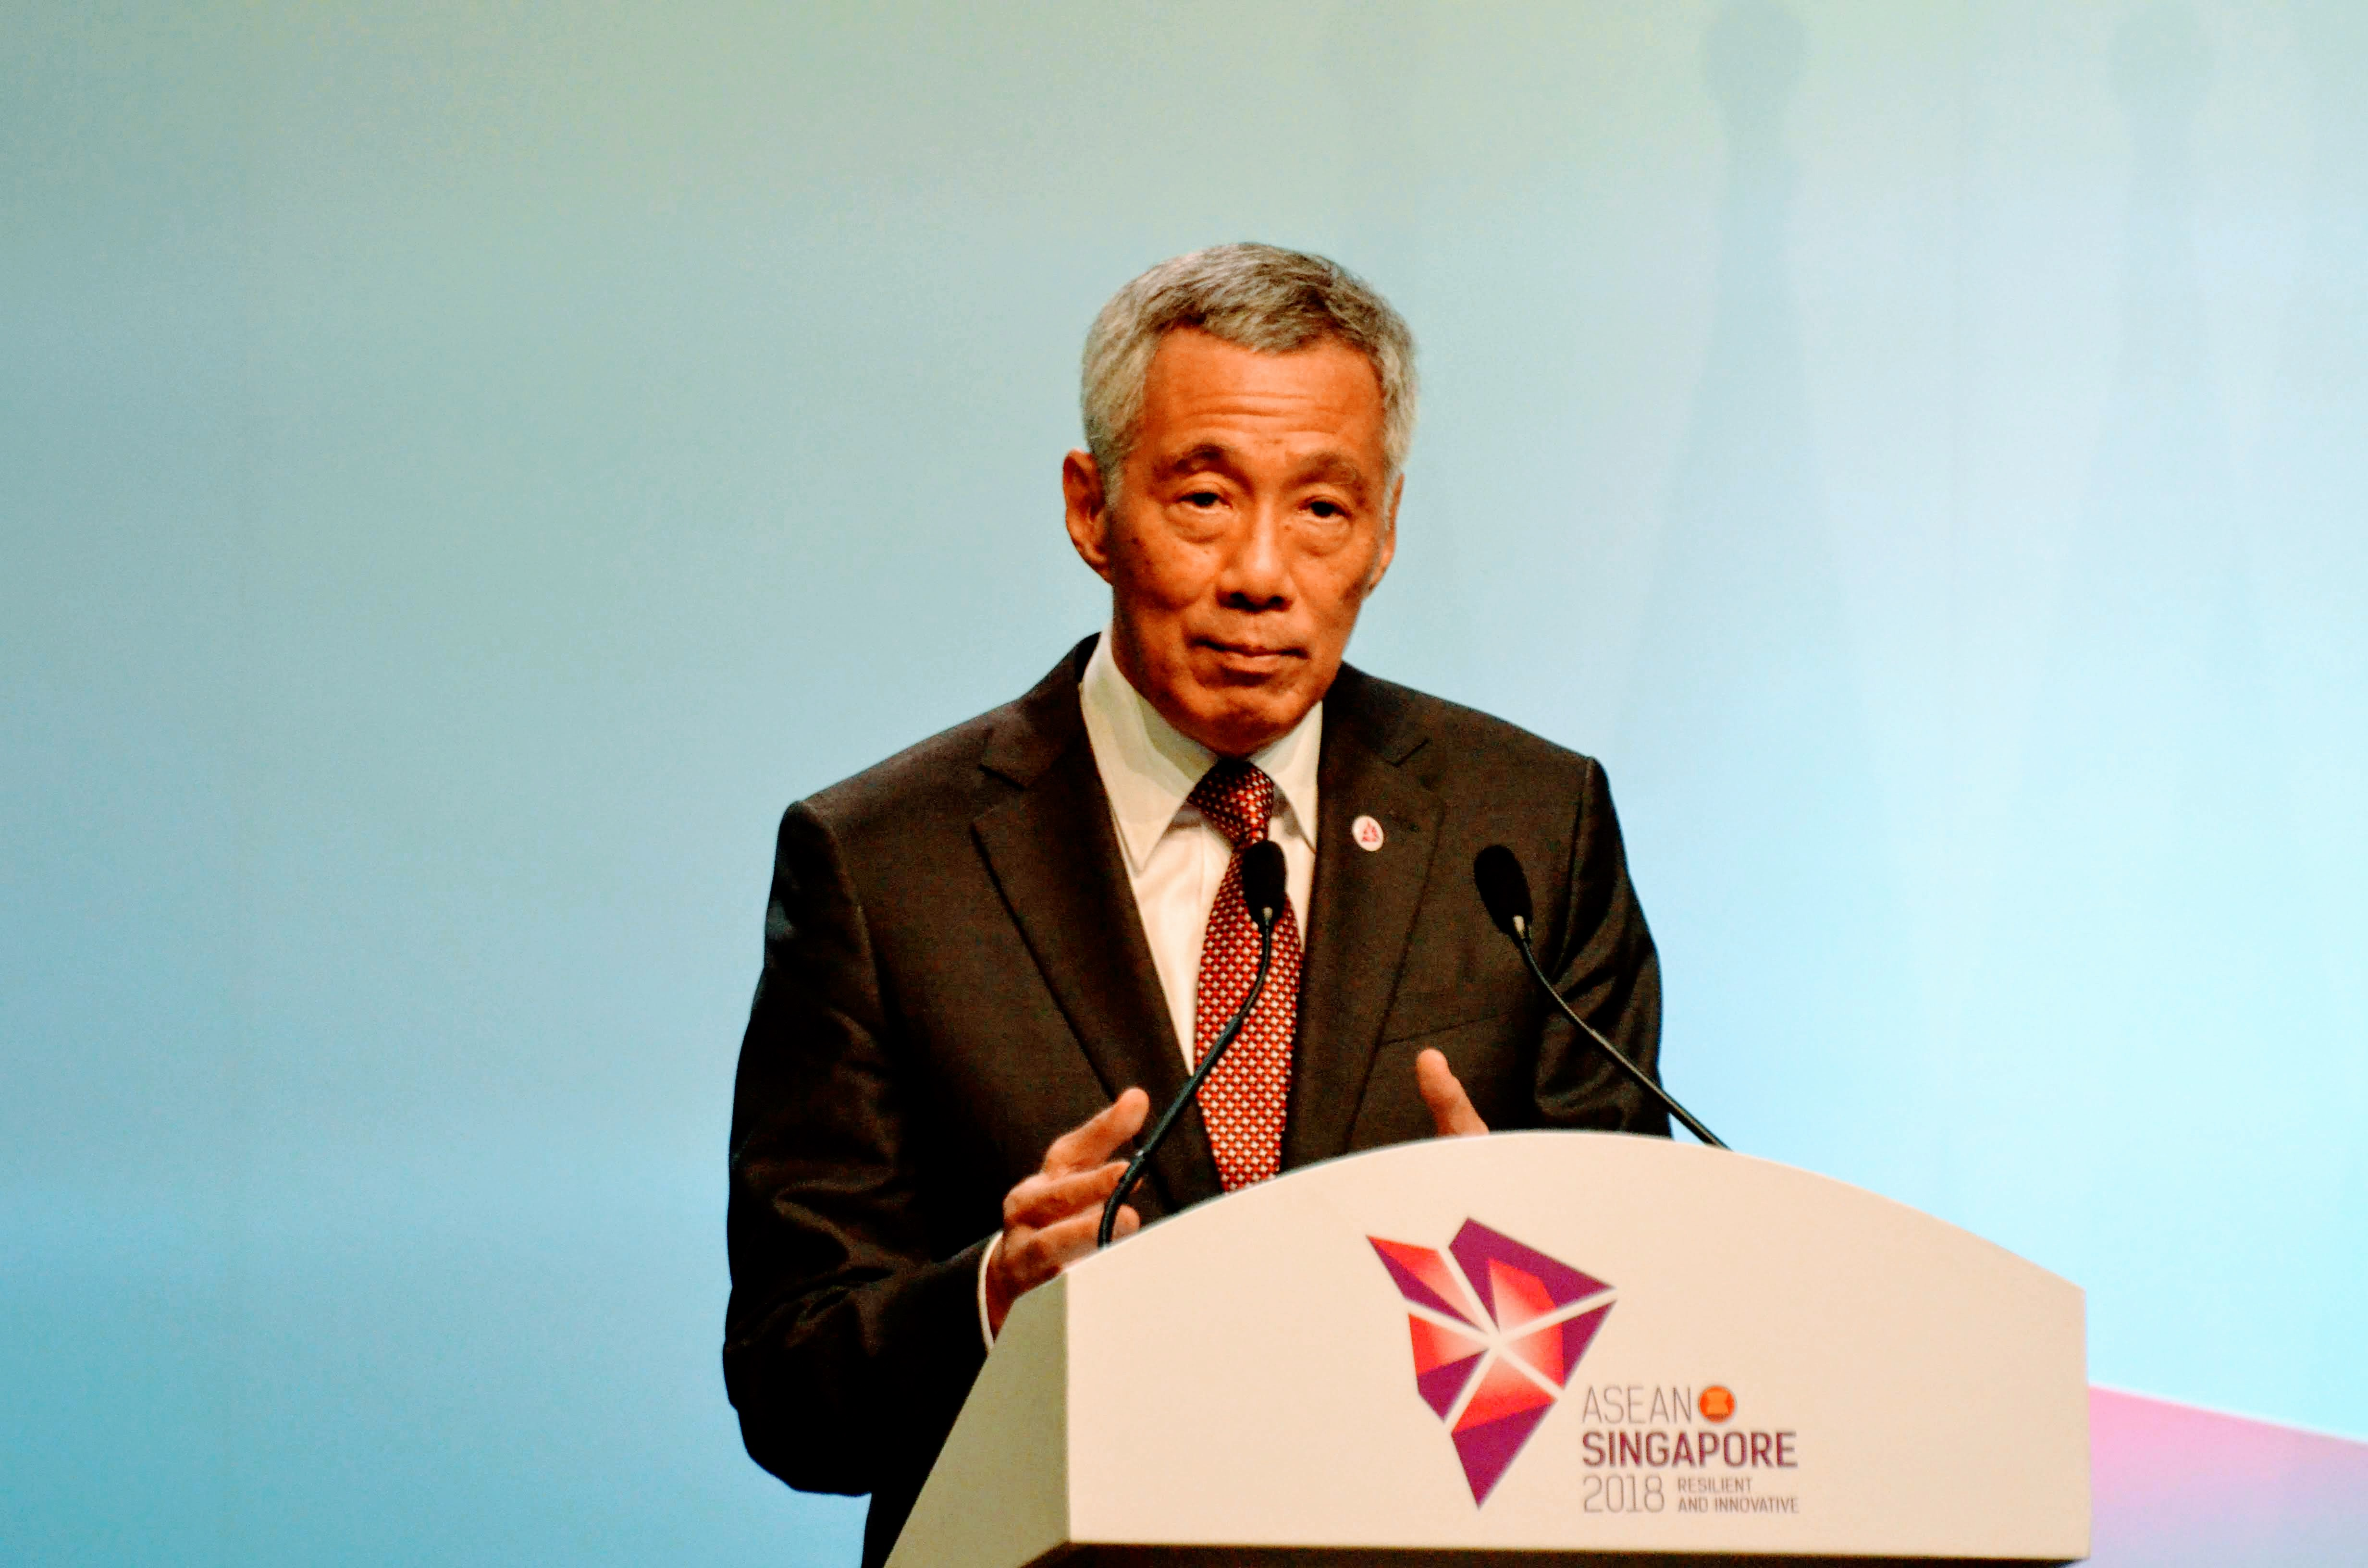 Prime Minister of Singapore Lee Hsien Loong speaking at the press conference after the conclusion of 33rd ASEAN Summit. Photo: Connected to India